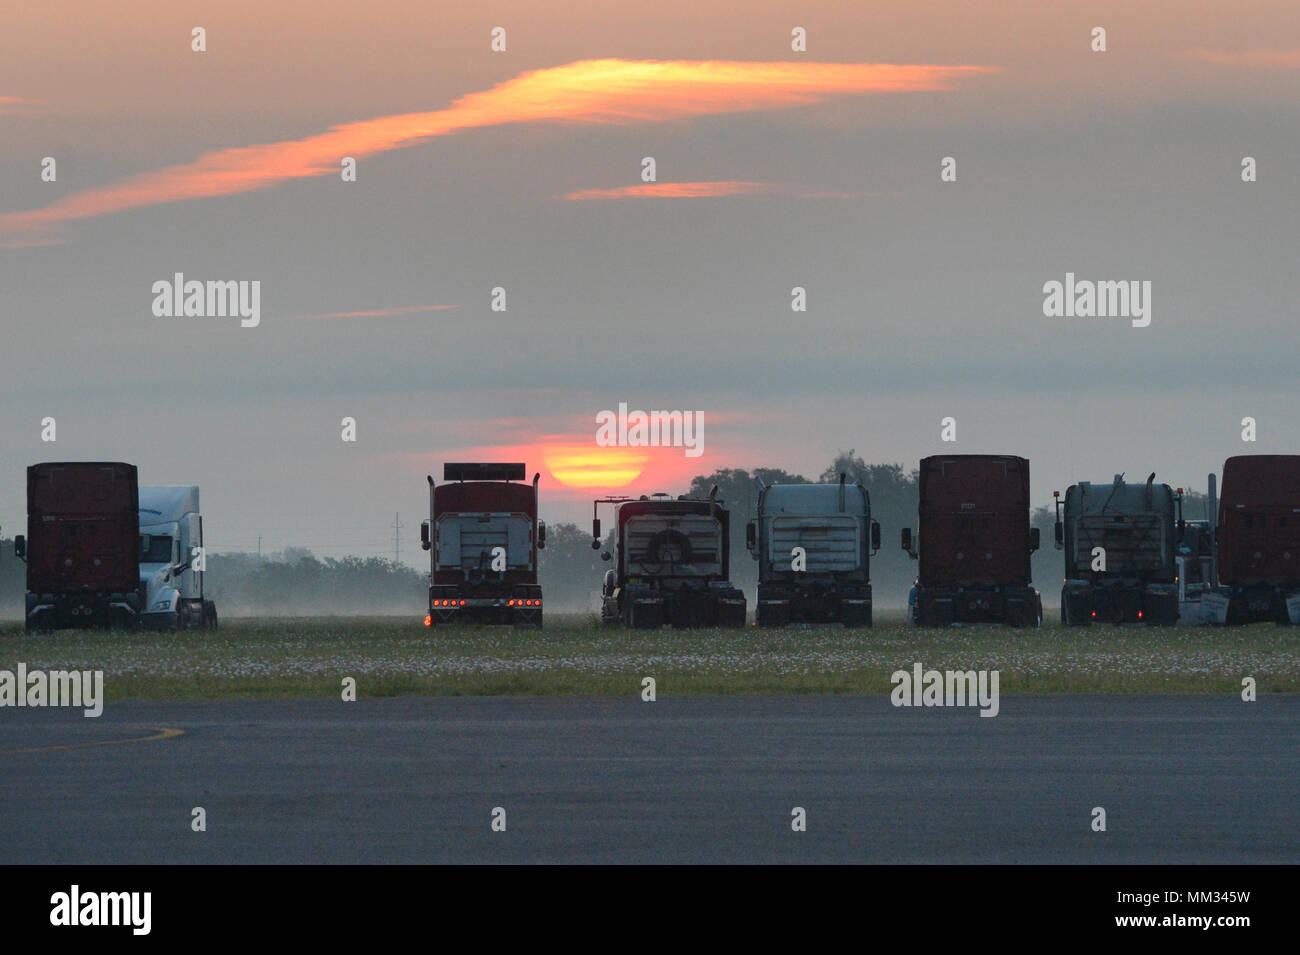 The sun rises over diesel trucks at JBSA Randolph auxiliary airfield, Seguin, Texas, September 1, 2017. The trucks are supporting disaster-relief efforts for a category-4 hurricane with 130 mph winds as it made landfall, August 25, 2017.  Days after the hurricane reached the Texas, more than 50 inches of rain flooded the coastal region. (U.S. Air Force Photo by Tech. Sgt. Chad Chisholm/Released) Stock Photo